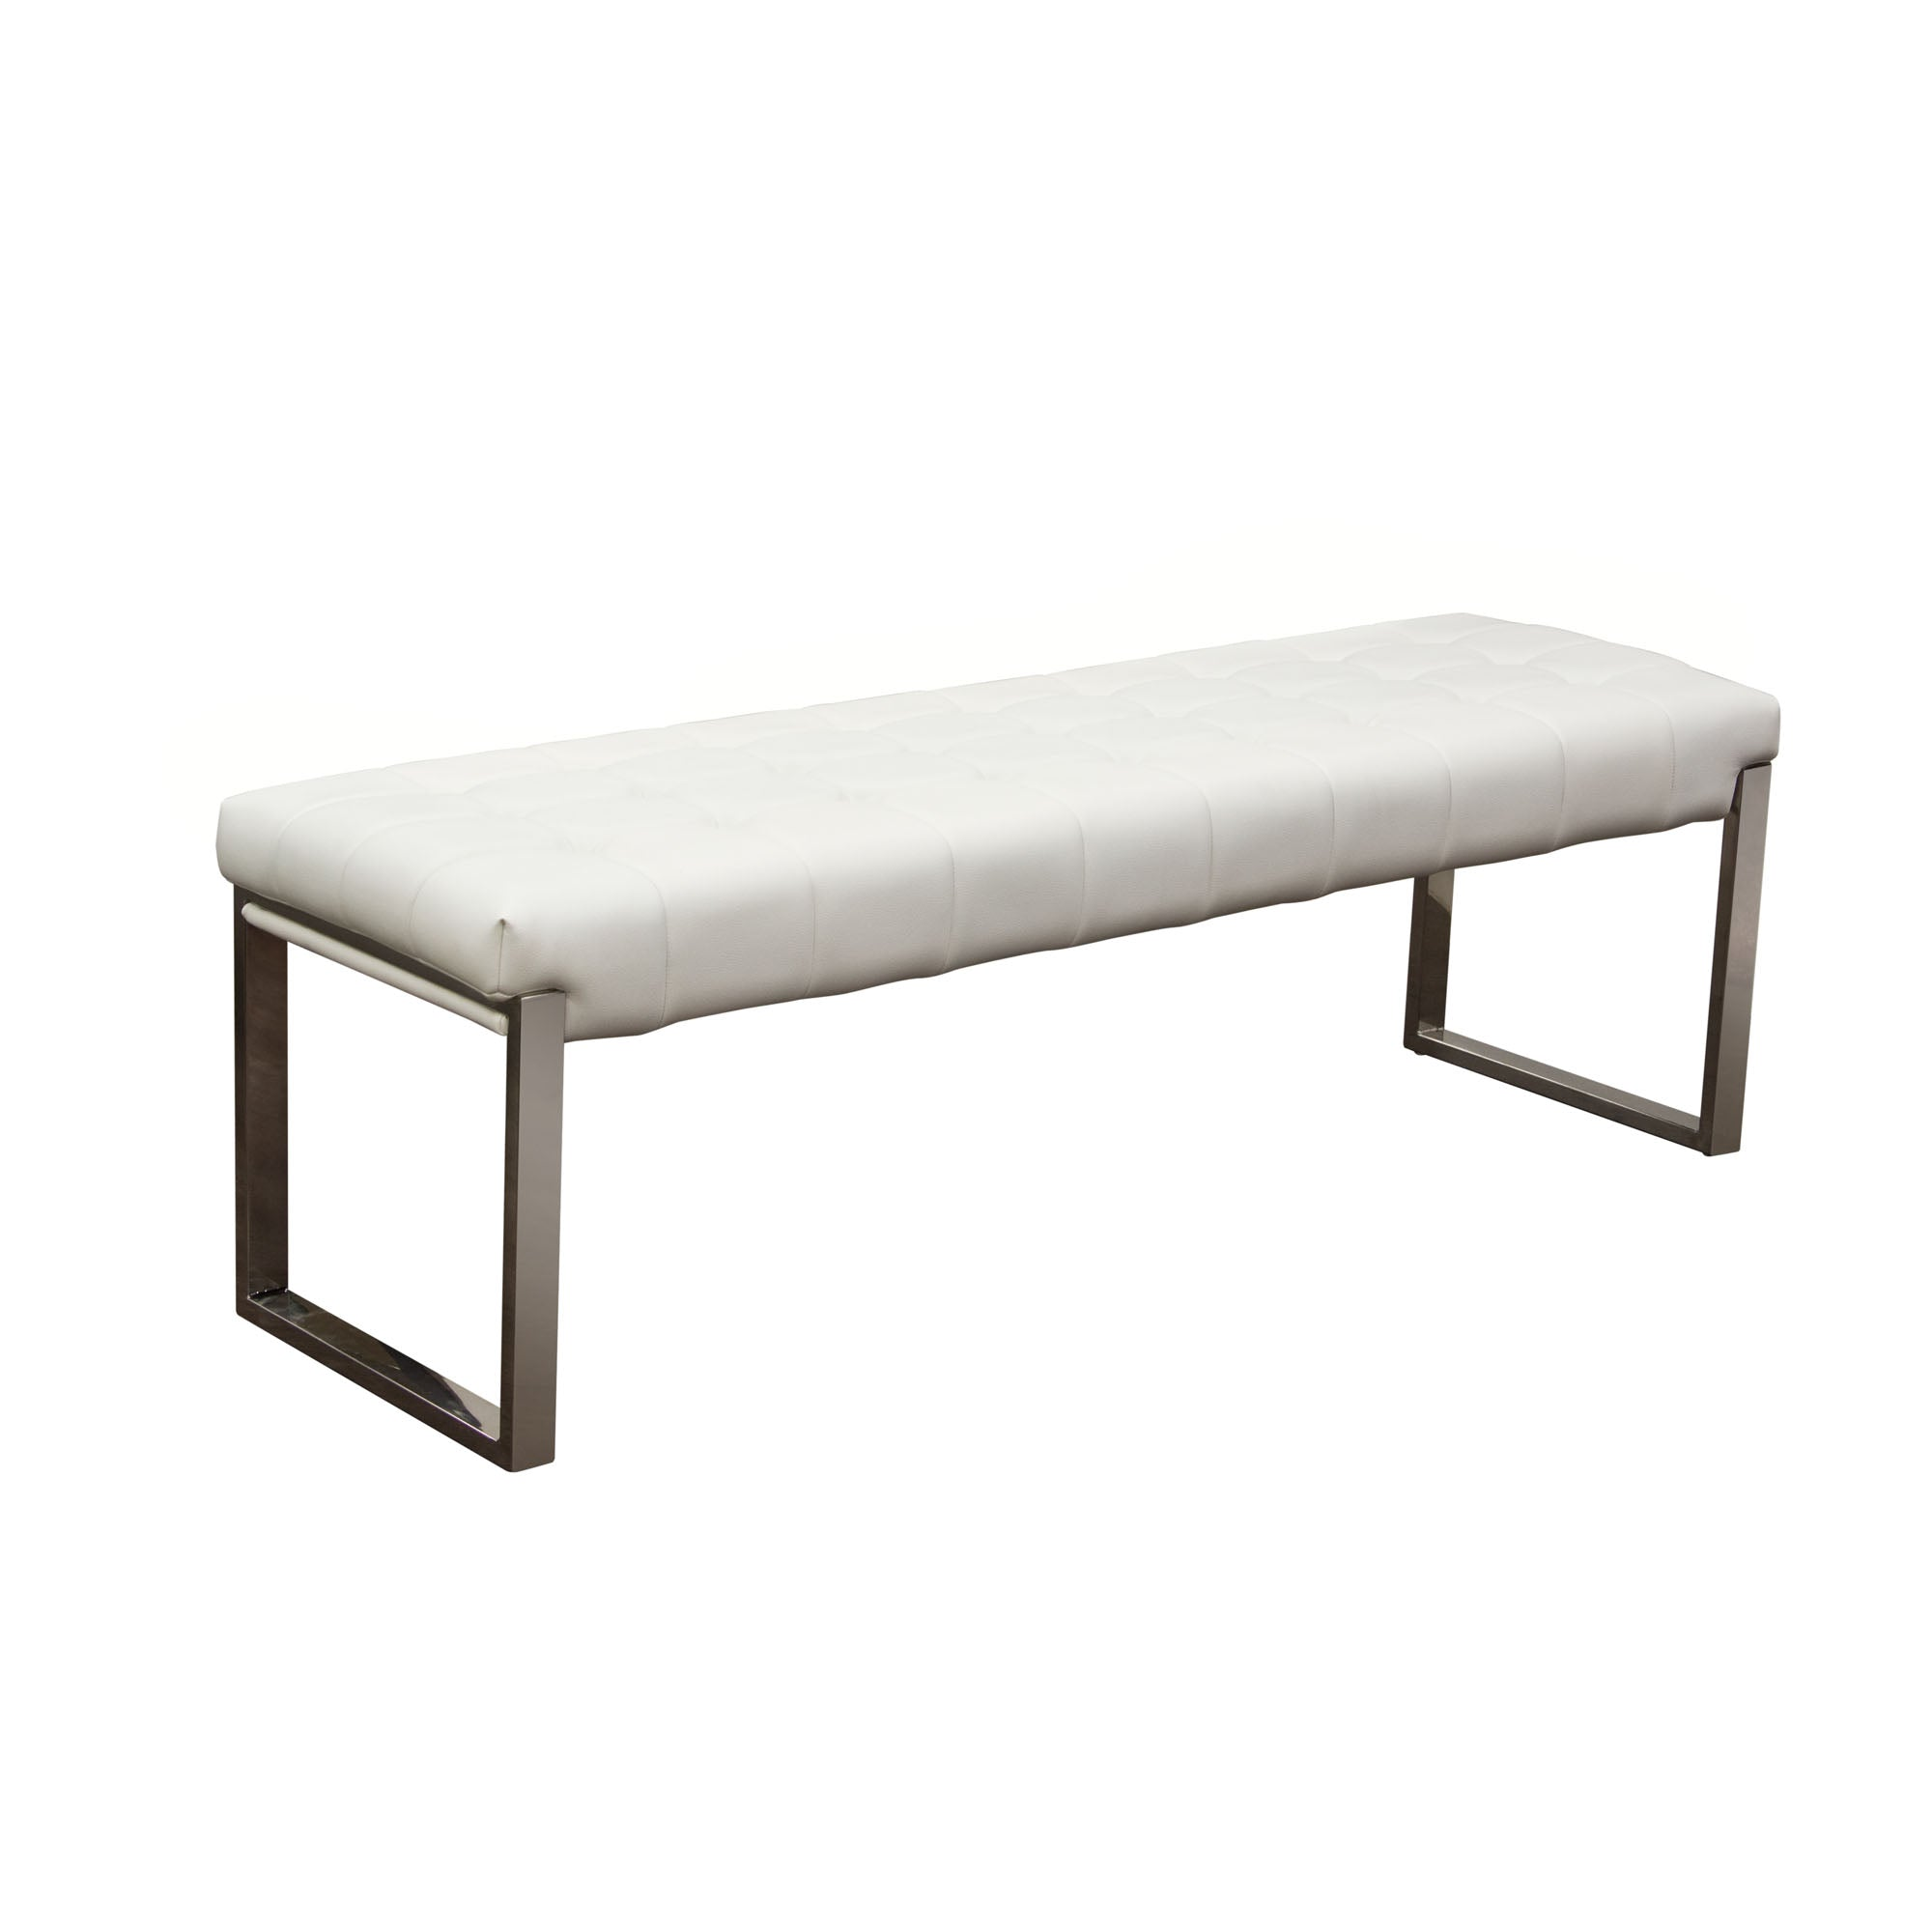 Knox Backless, Tufted Bench - White